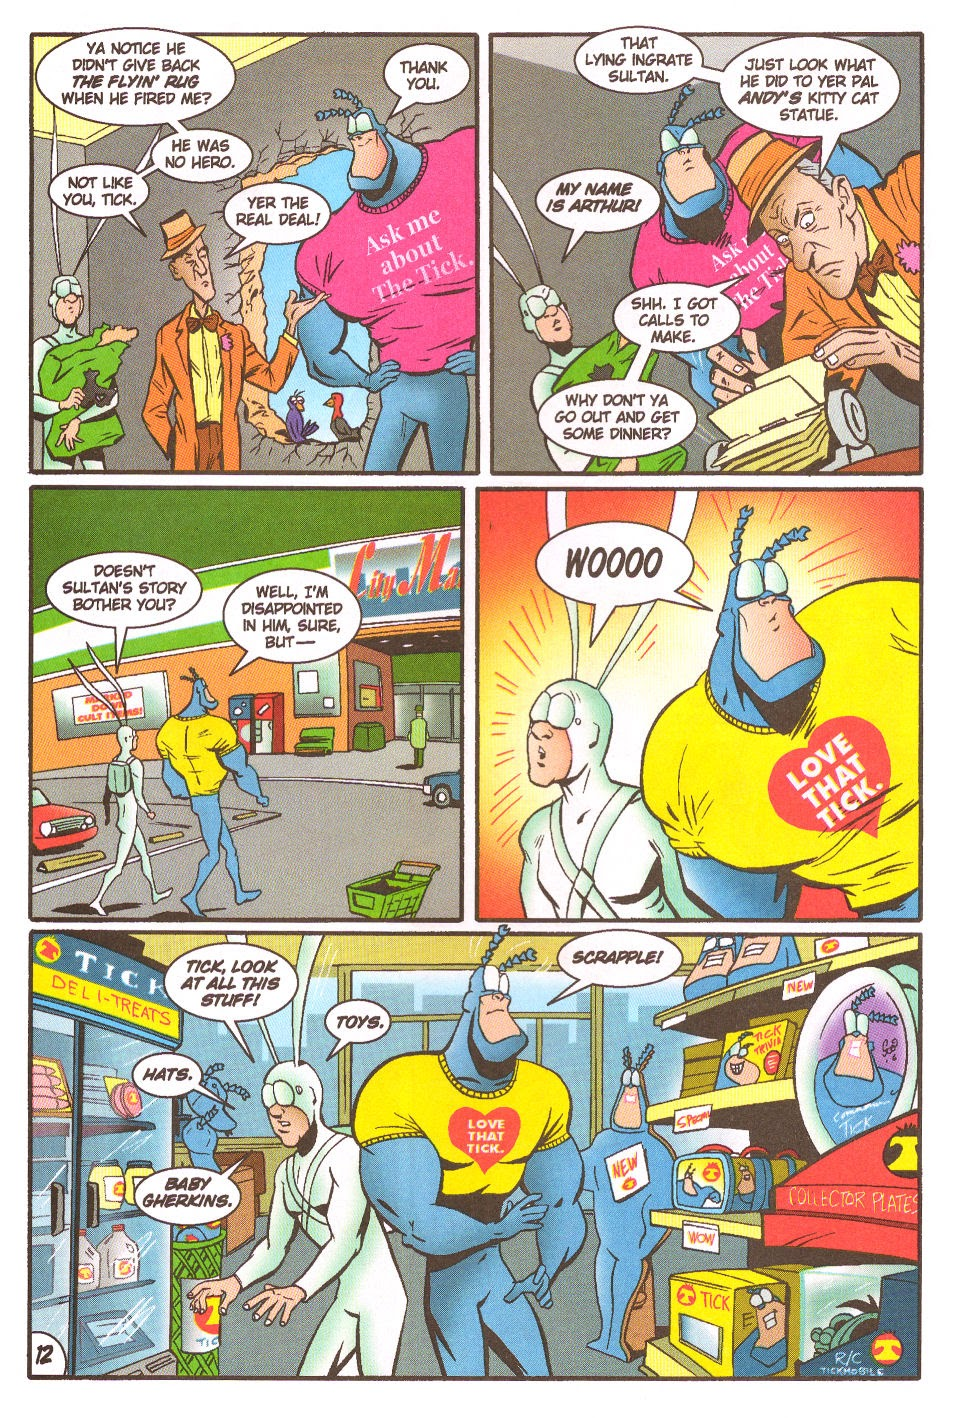 Read online The Tick: Days of Drama comic -  Issue #5 - 14